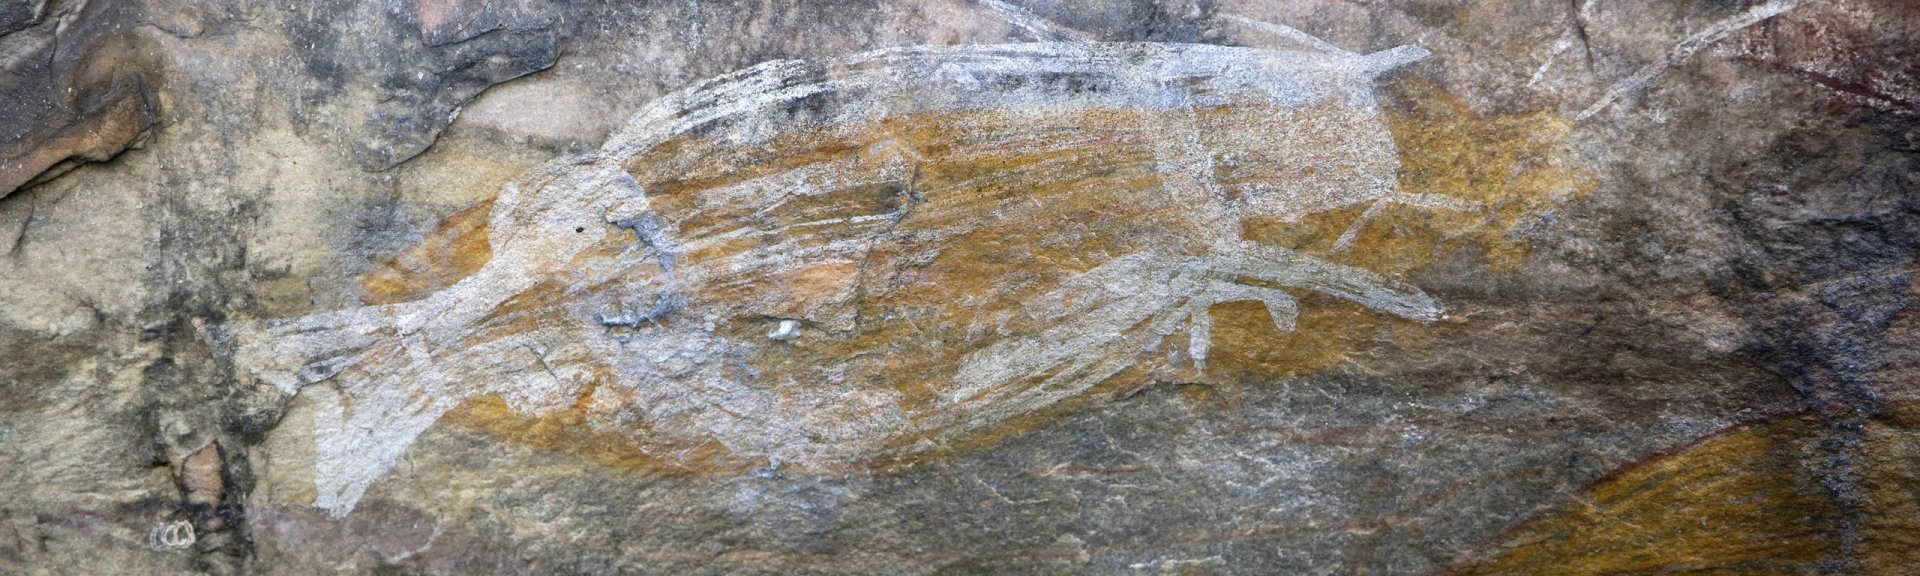 Aboriginal cave paintings, Ubirr Rock, Kakadu National Park. Photo by Michelle McAulay.